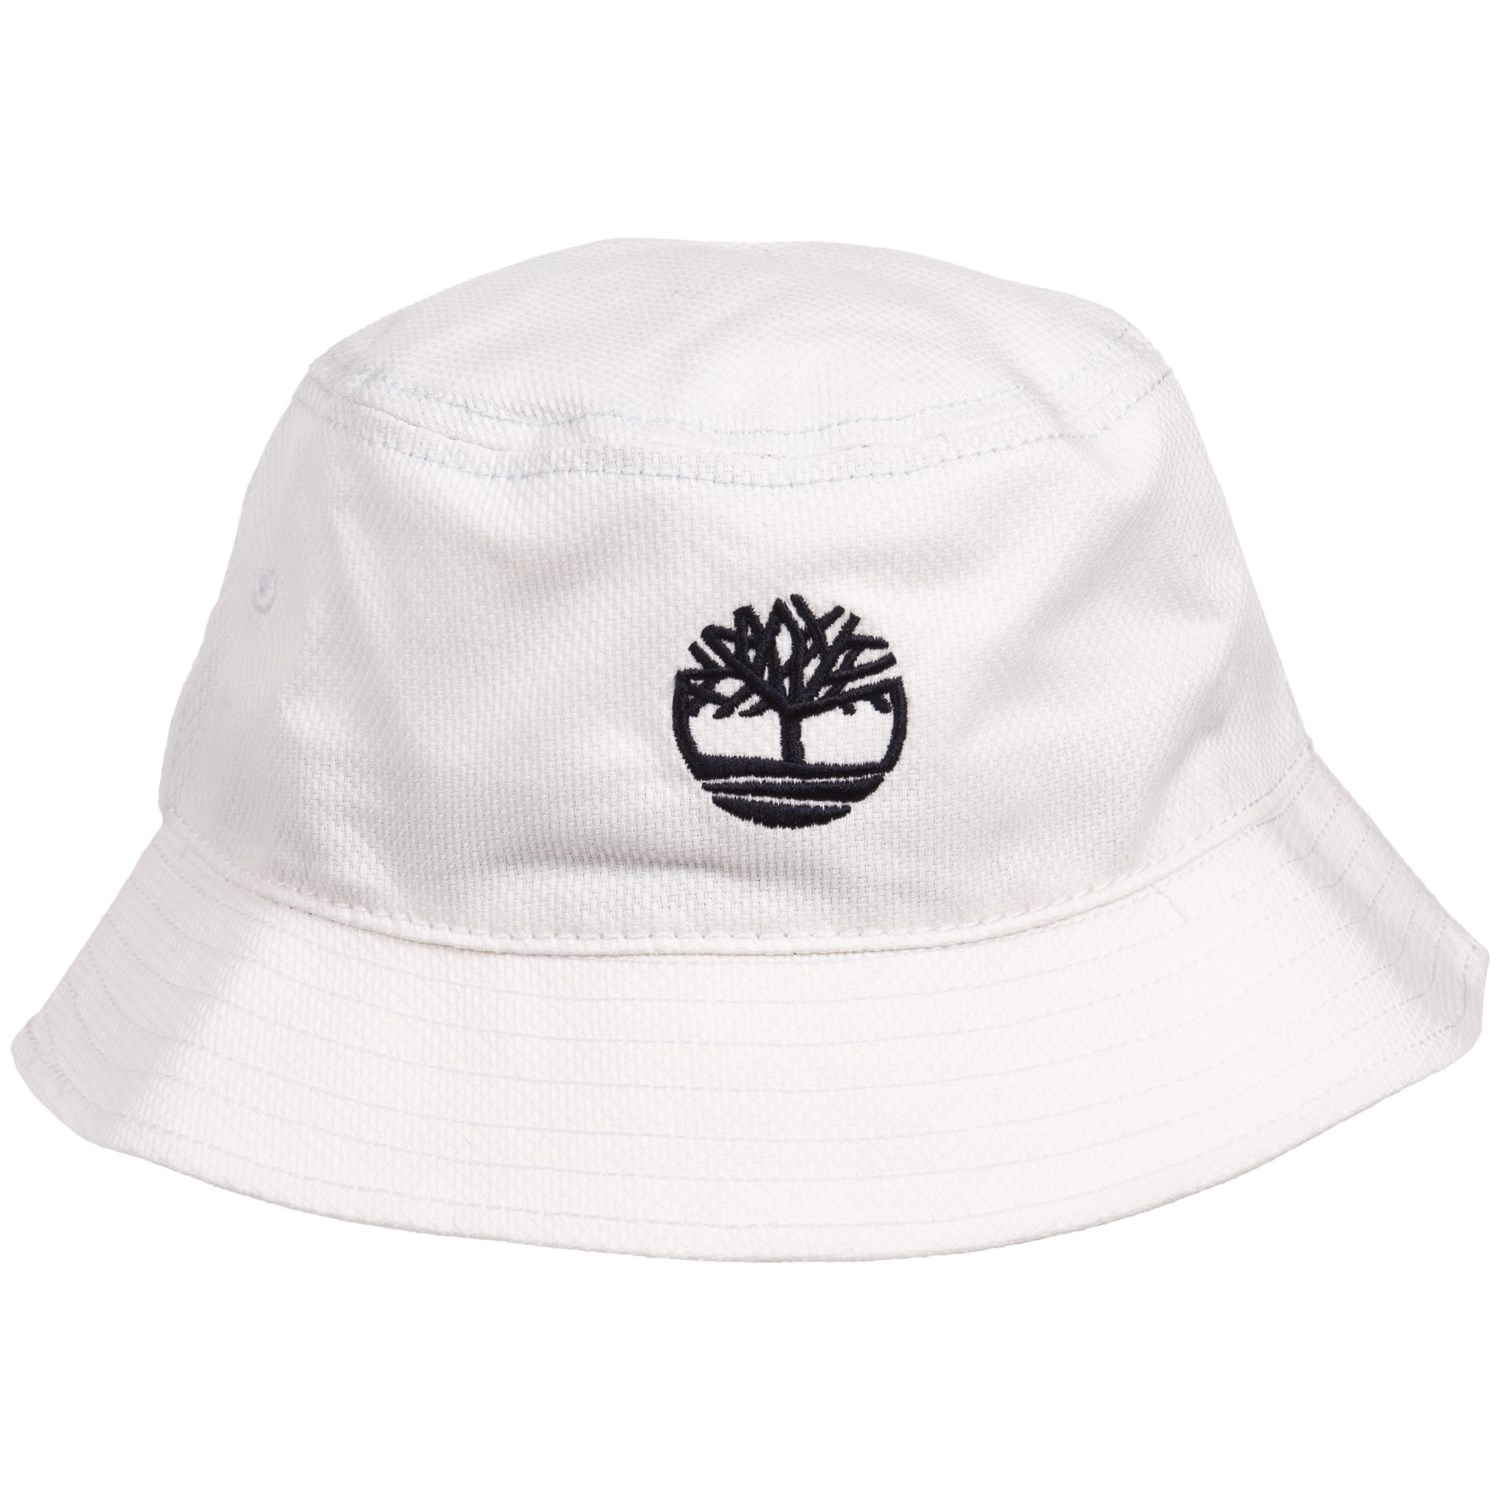 54fd4f22b Timberland Bucket Hat with Tree Logo (For Men)